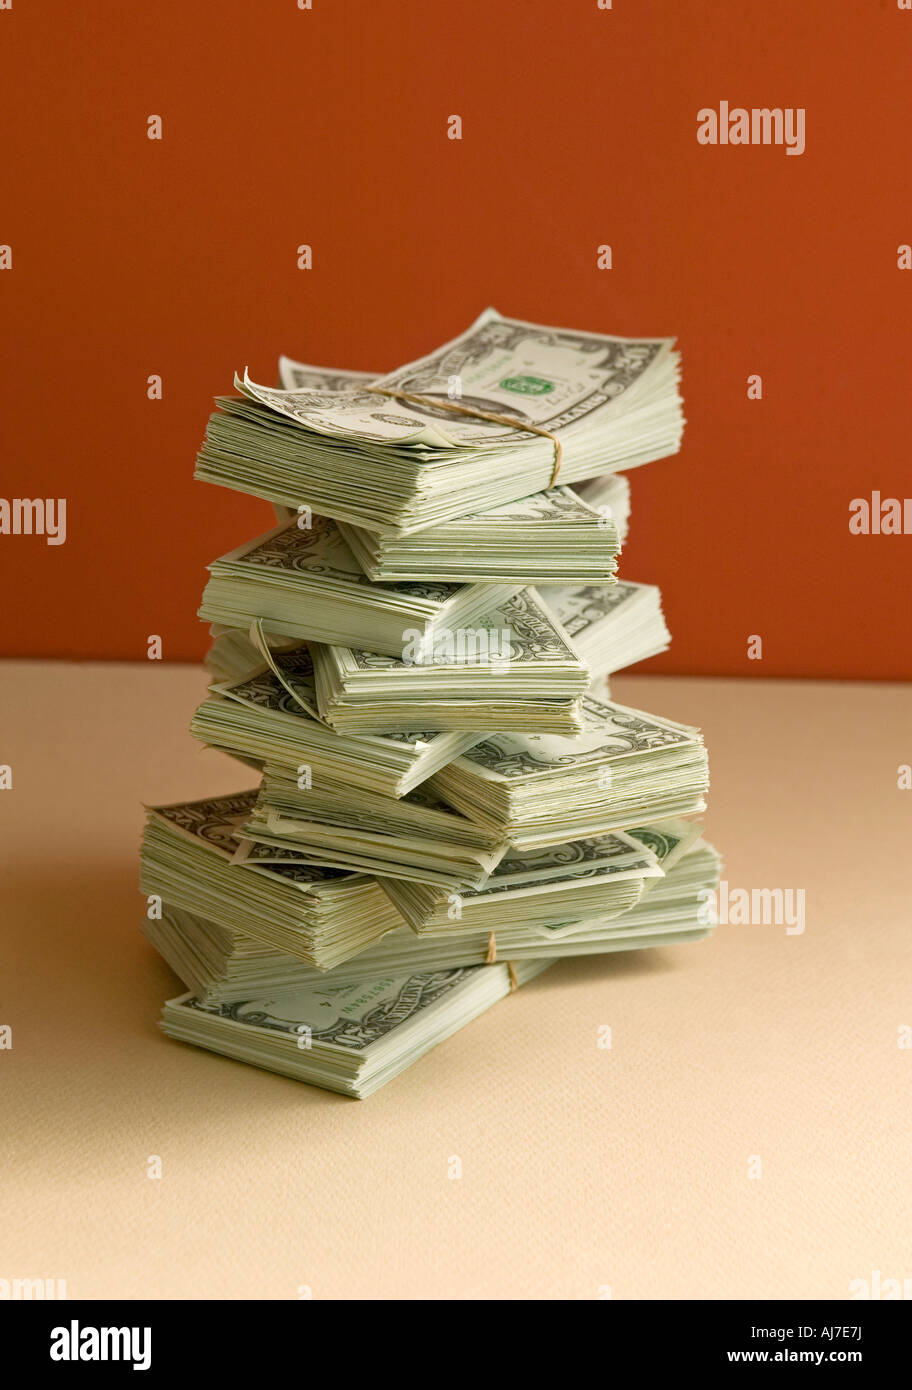 stack of money in pile with dollars on orange background - Stock Image